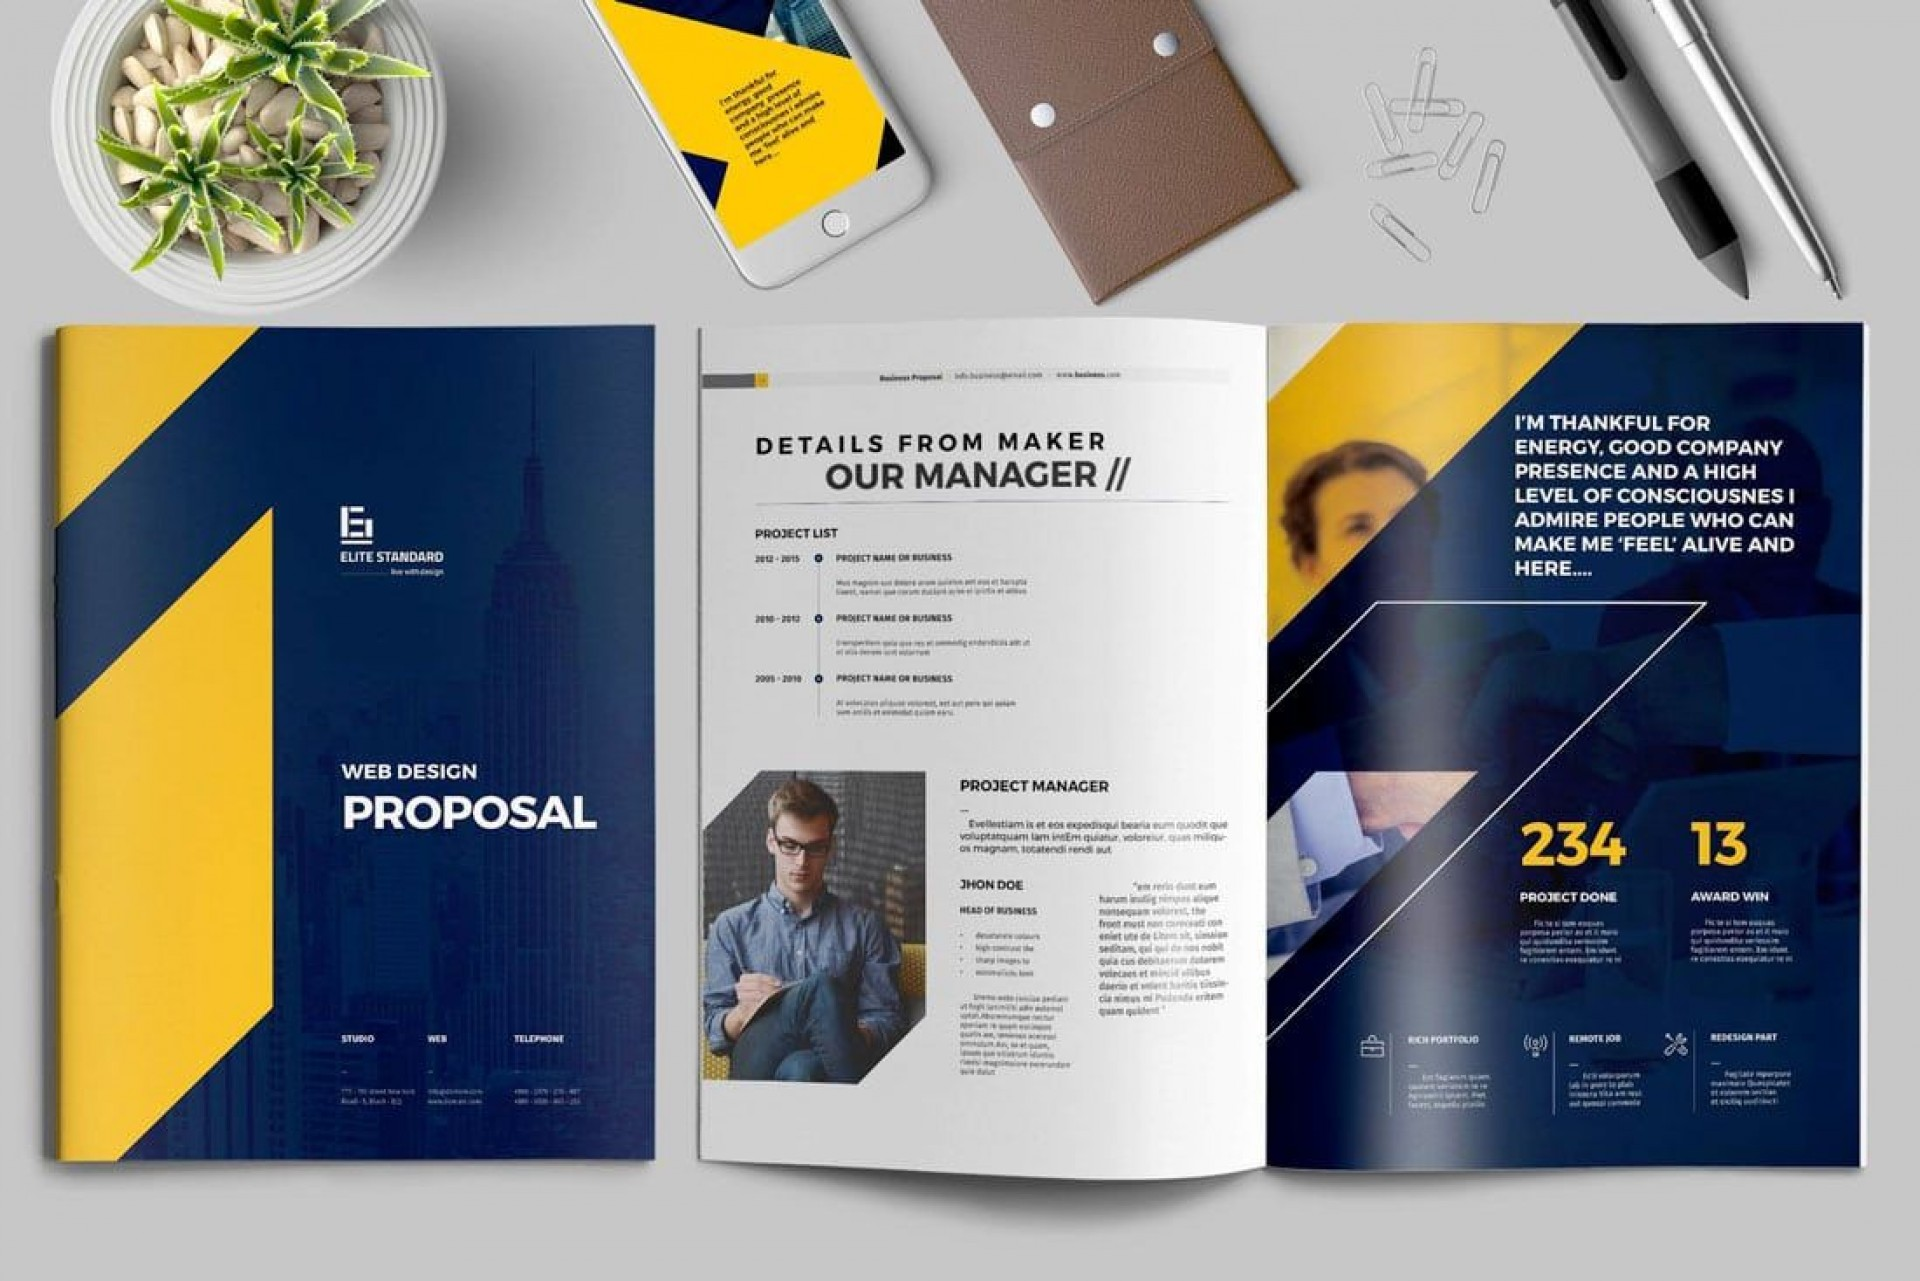 008 Staggering Web Design Proposal Template Image  Designer Writing Word Document Simple1920